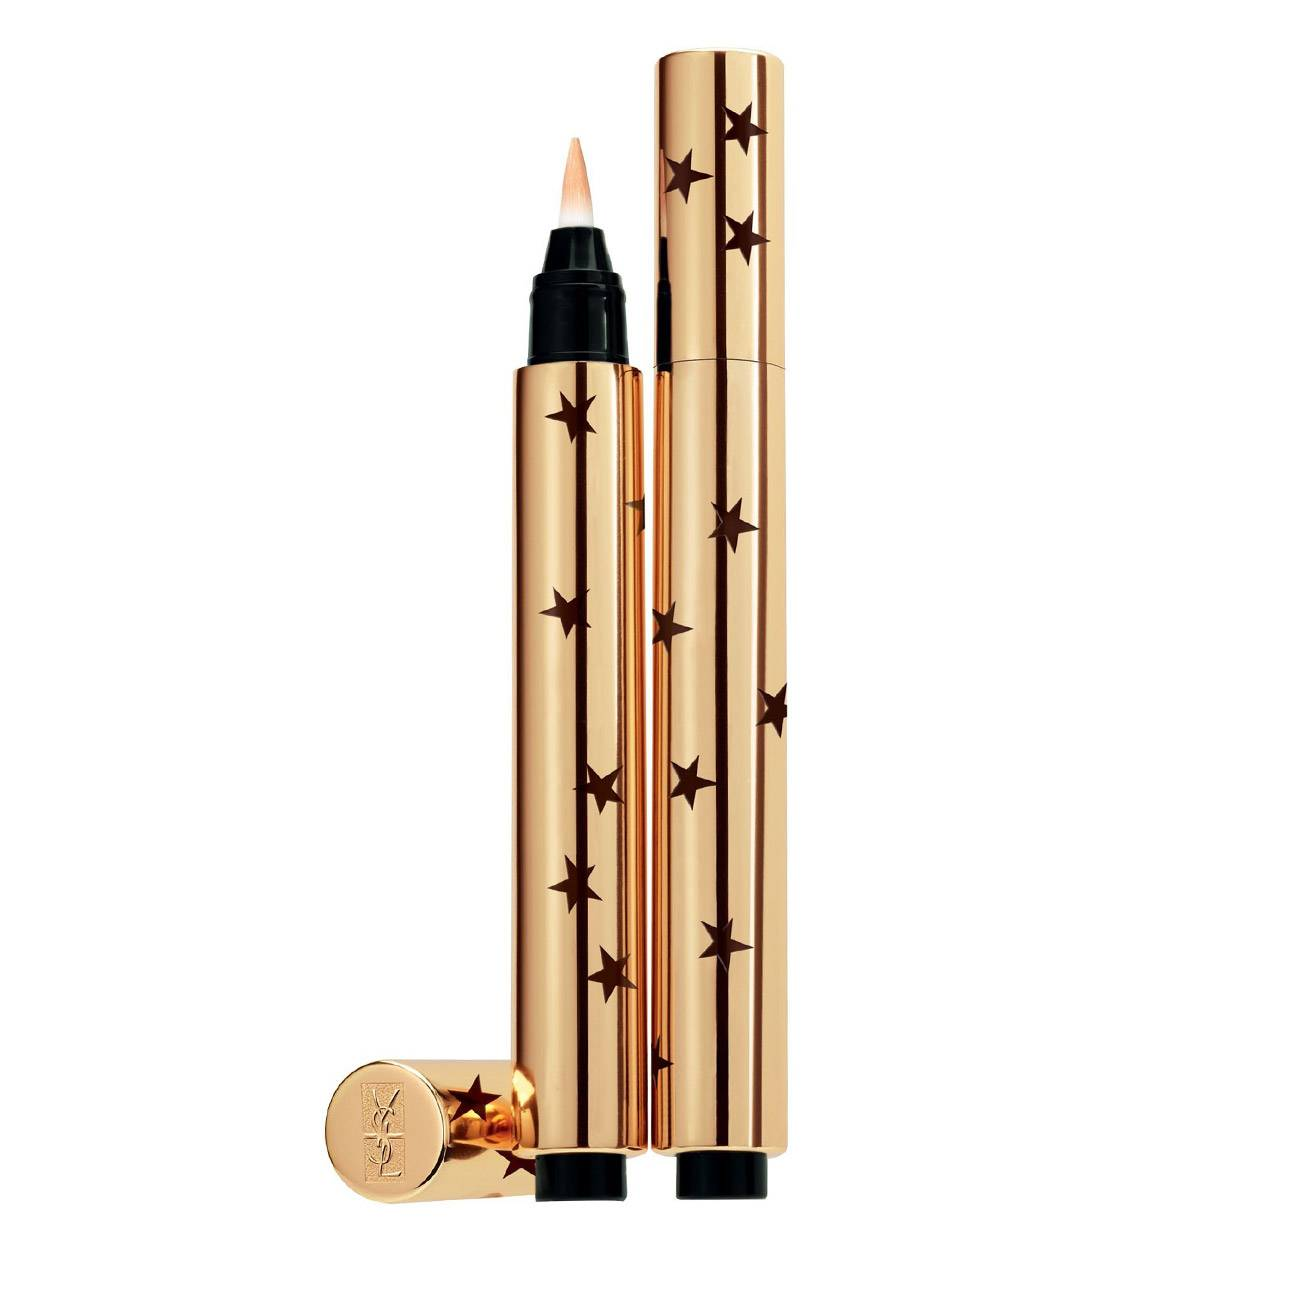 Touche Éclat Star Collector 02 01 Luminouse Radiance Yves Saint Laurent imagine 2021 bestvalue.eu